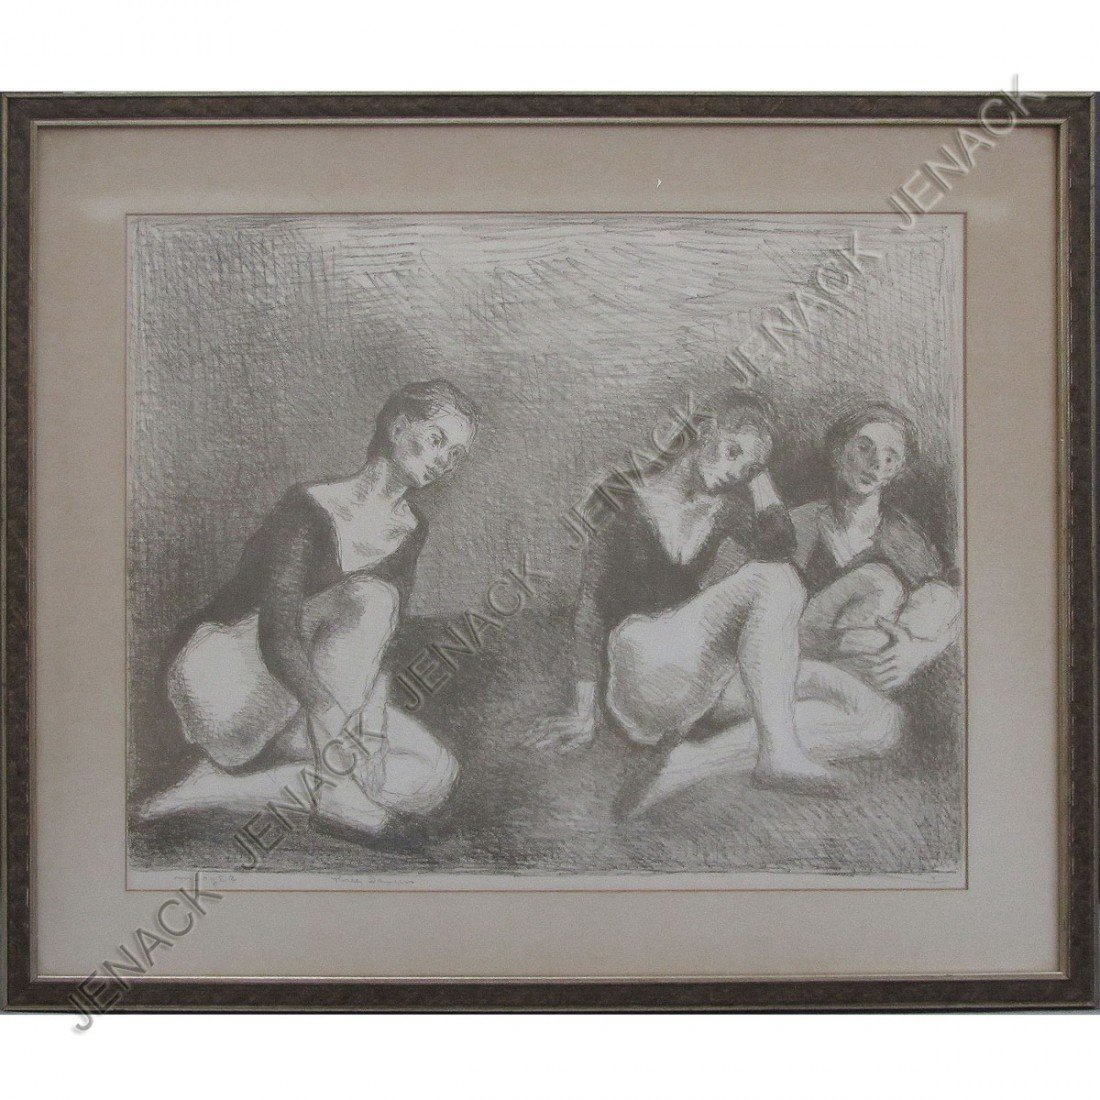 19: MOSES SOYER (AMERICAN NA 1899-1974), LITHOGRAPH